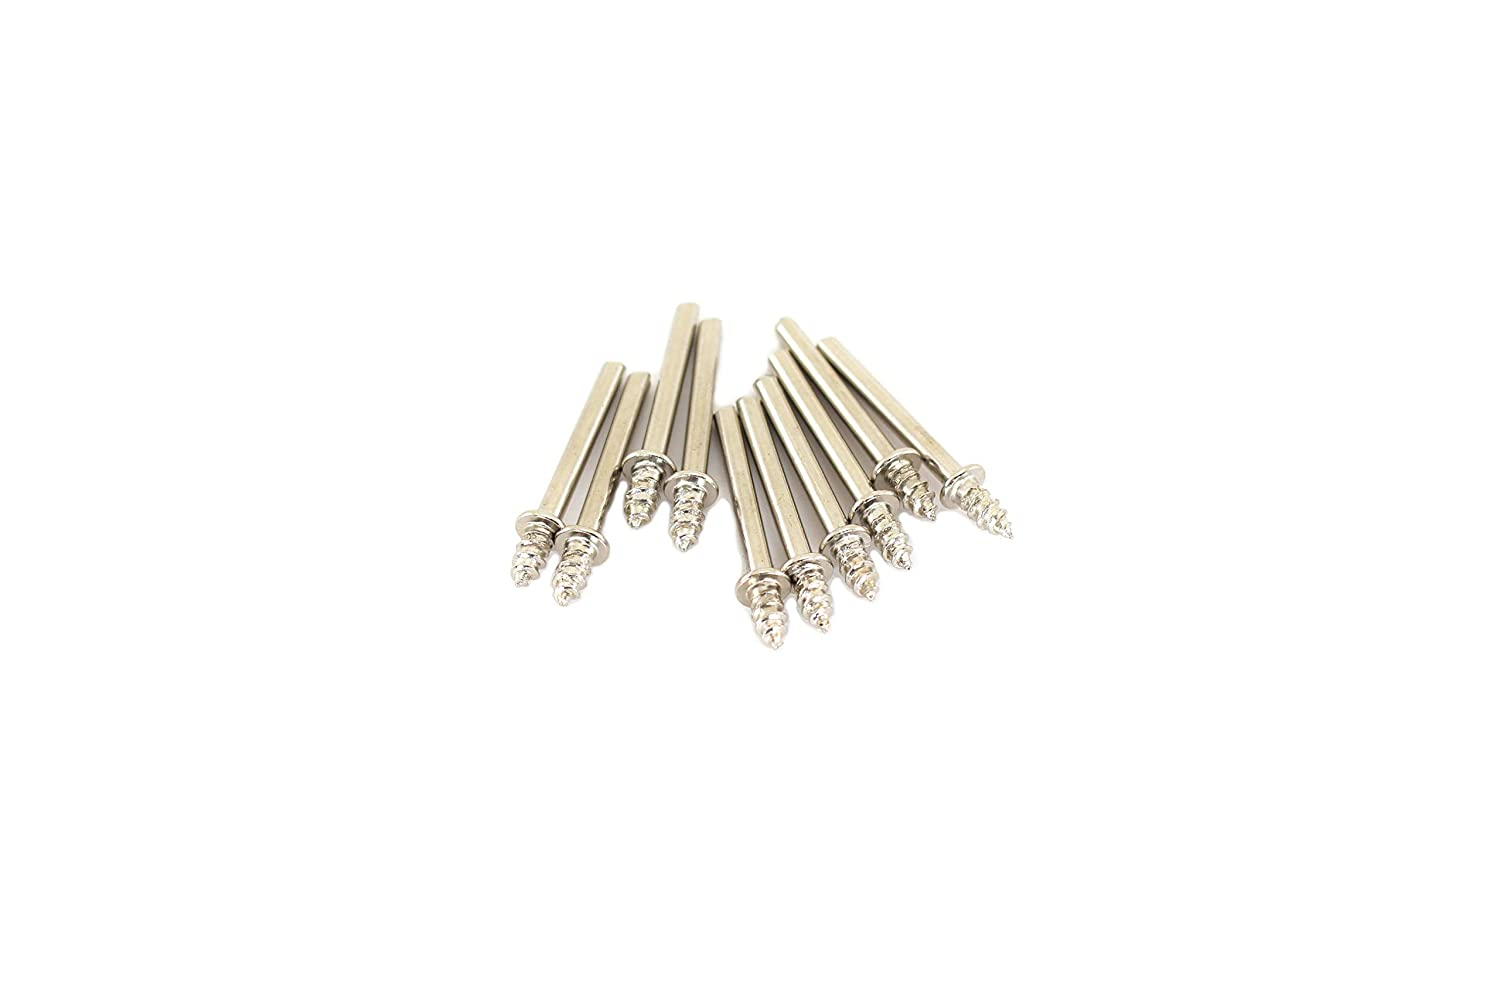 TEMO 10 pc #401 screw Mandrel for Felt Polishing Wheel or Cone Tip with 1/8 inch (3mm) Shank fit Dremel and Compatible Rotary Tools